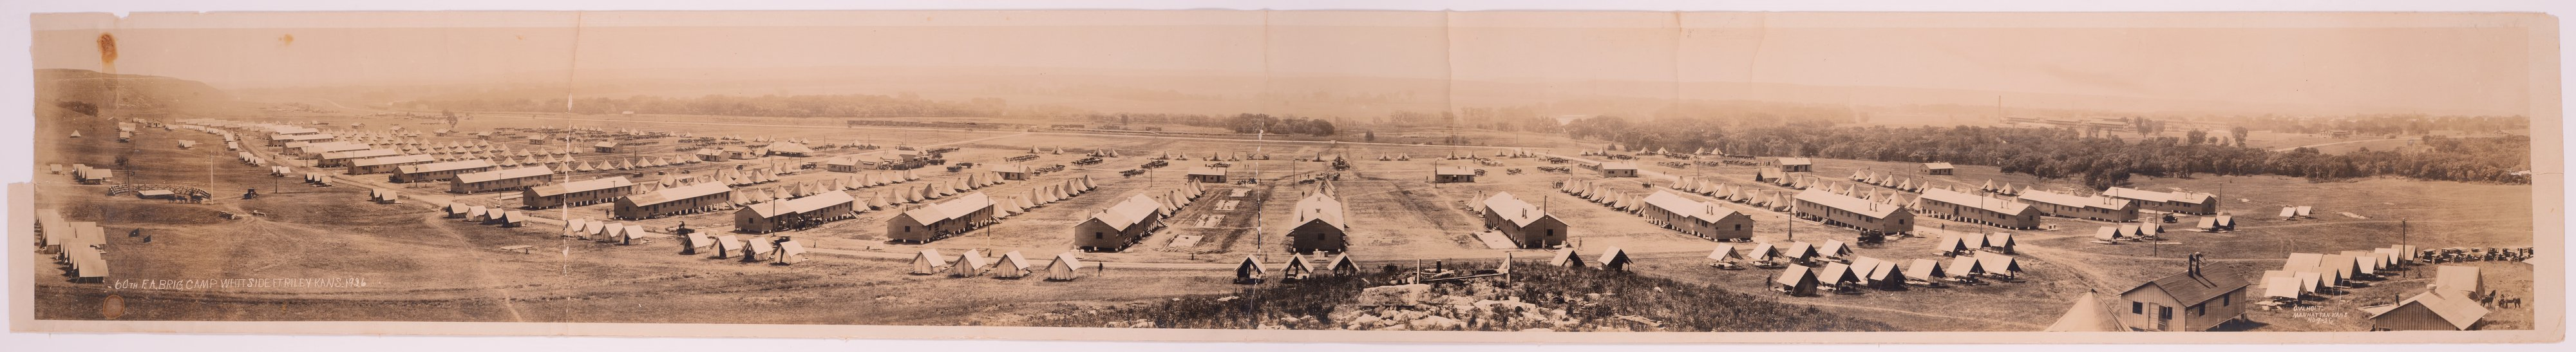 60th Field Artillery Brigade at Camp Whitside